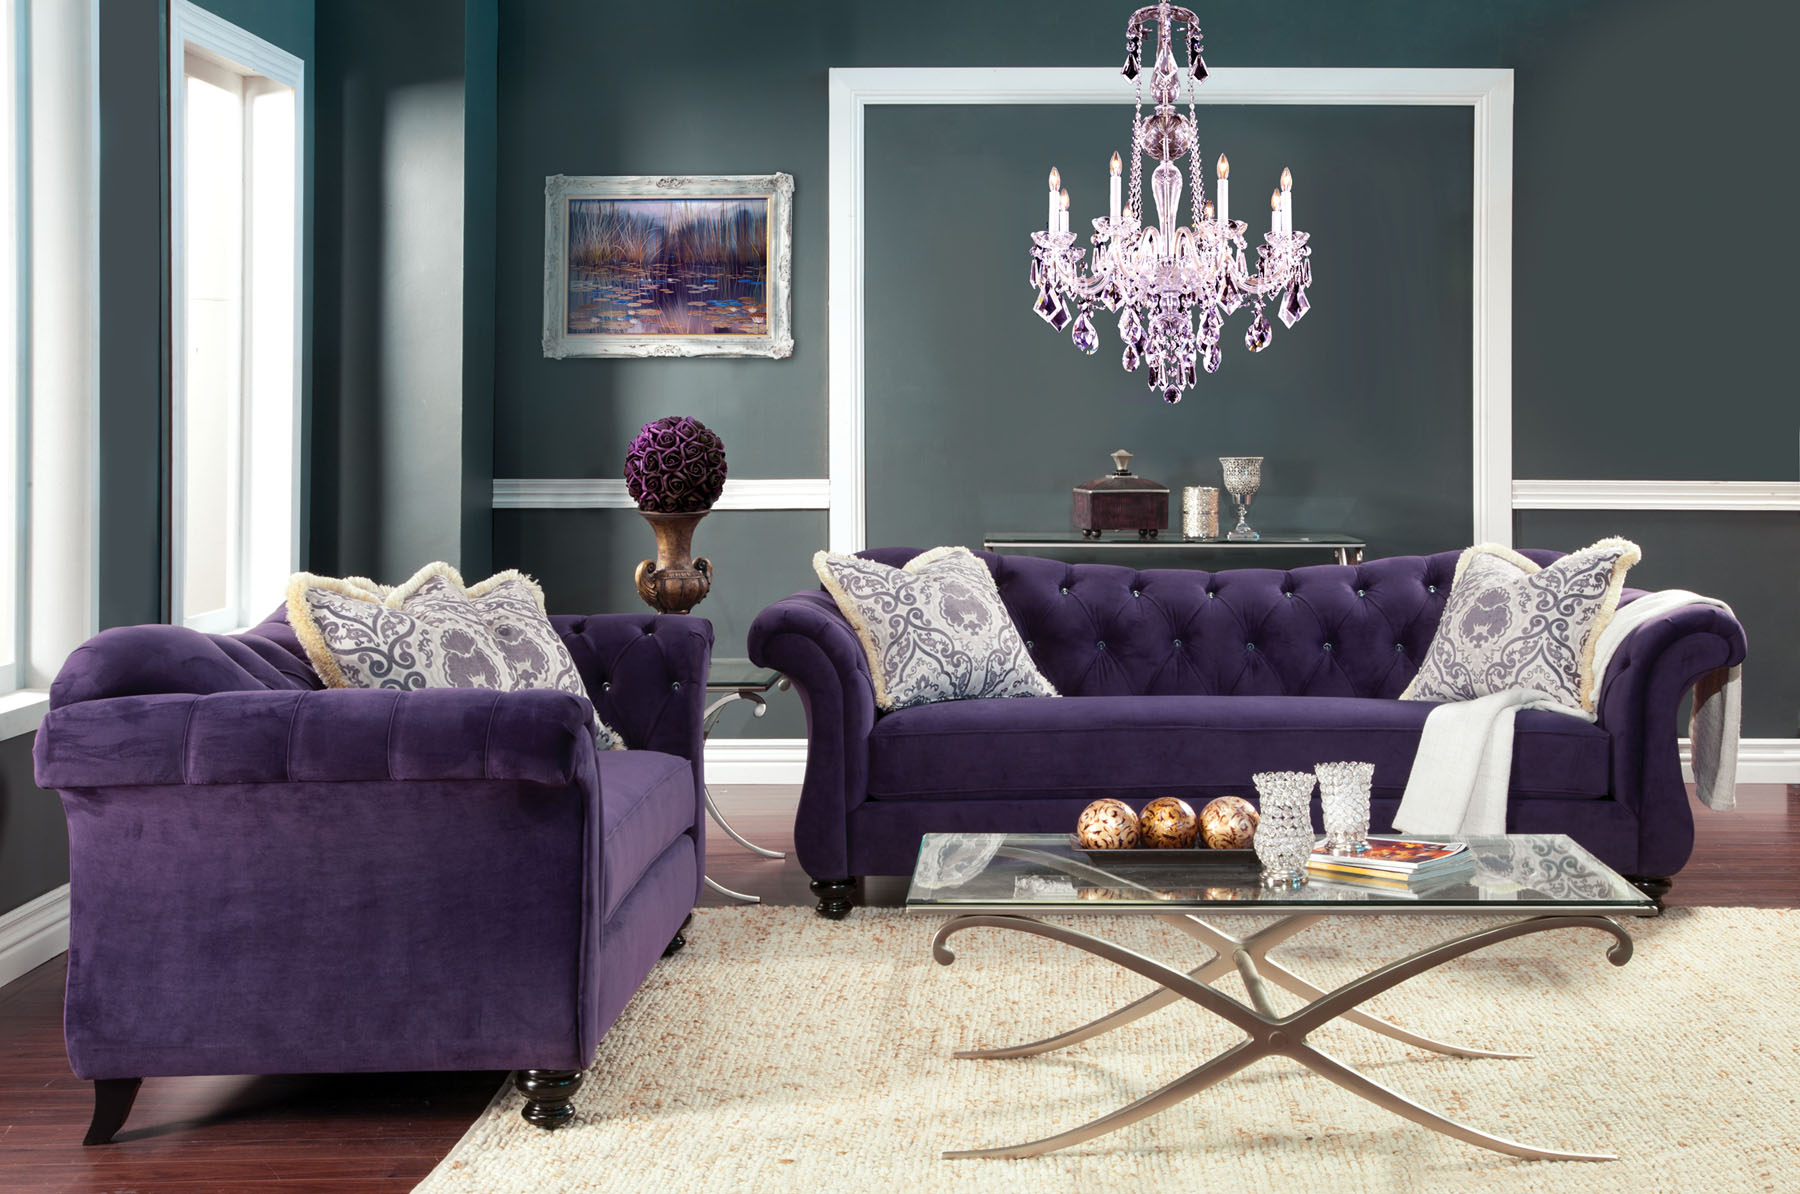 Groovy Foa Furniture Of America Antoinette 2Pc Purple Sofa Loveseat Set Gmtry Best Dining Table And Chair Ideas Images Gmtryco